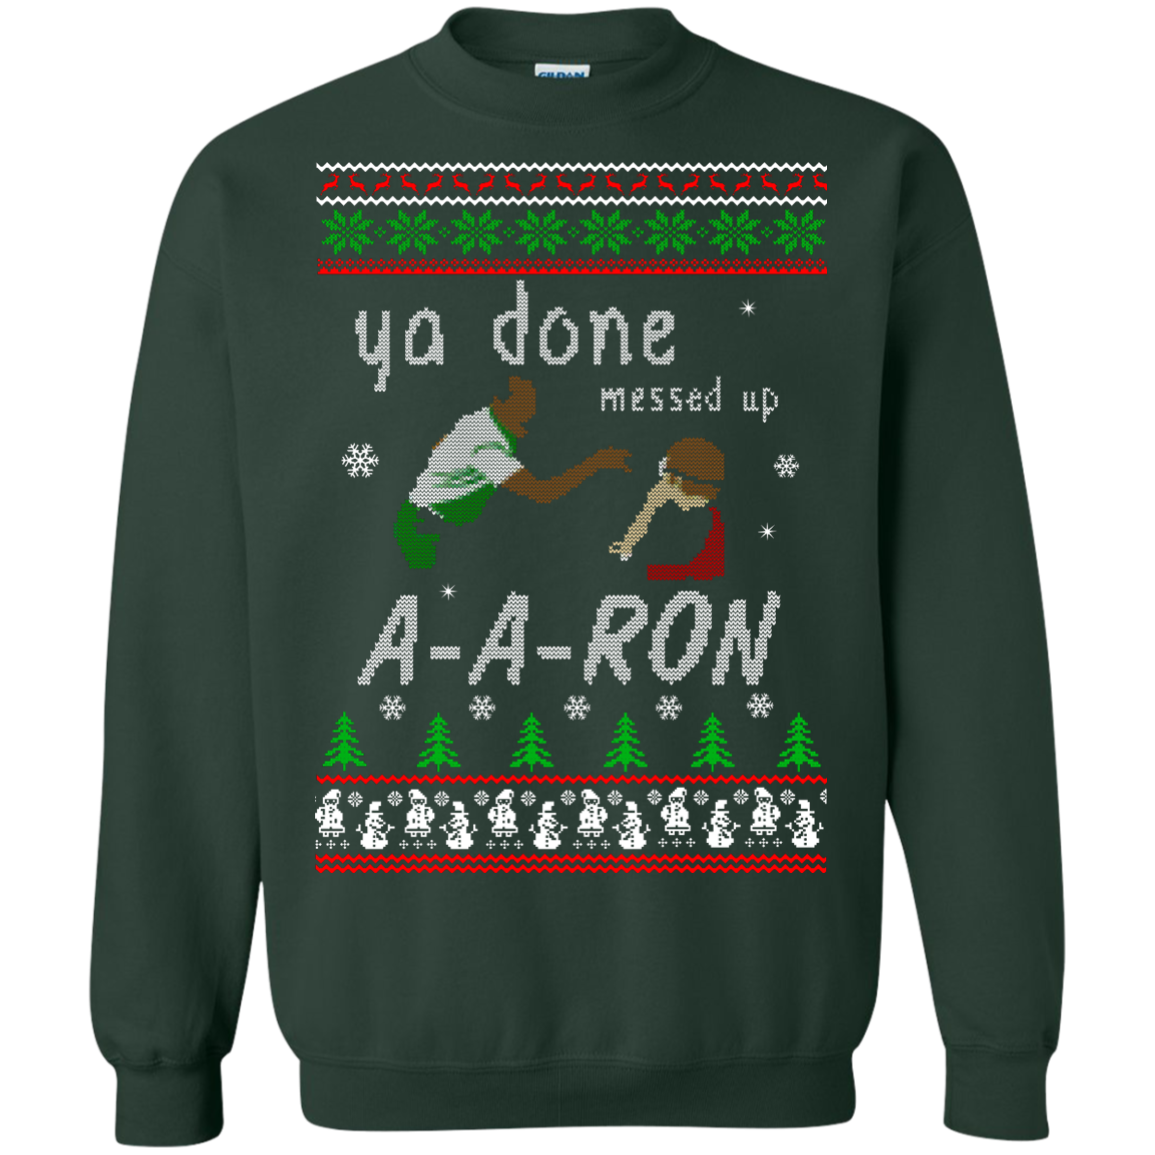 aaron sweater ya done messed up christmas sweatshirt